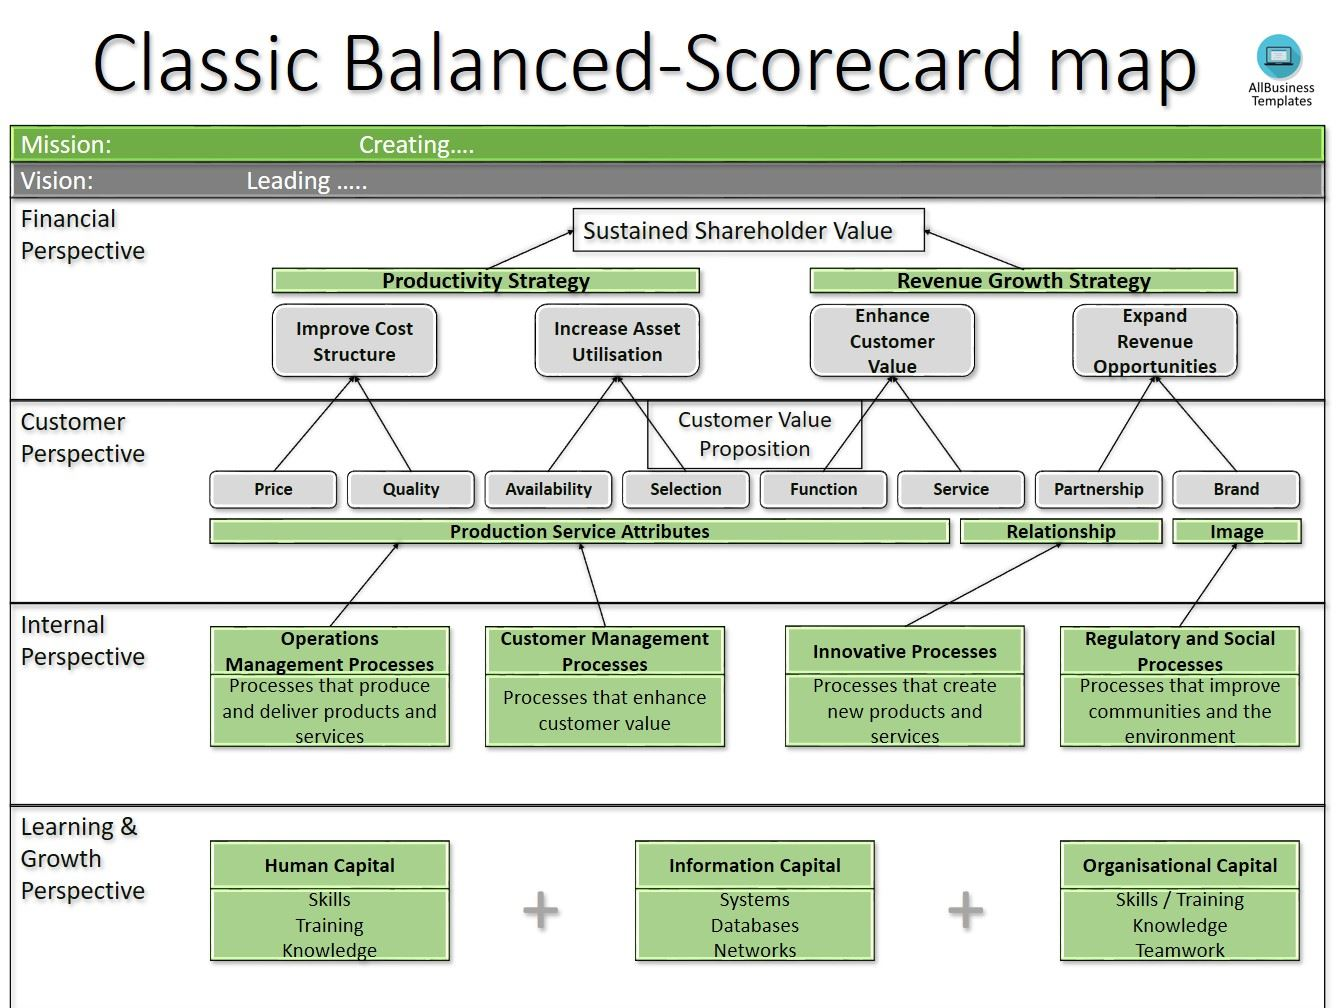 Business balanced scorecard template templates at business balanced scorecard template main image fbccfo Images